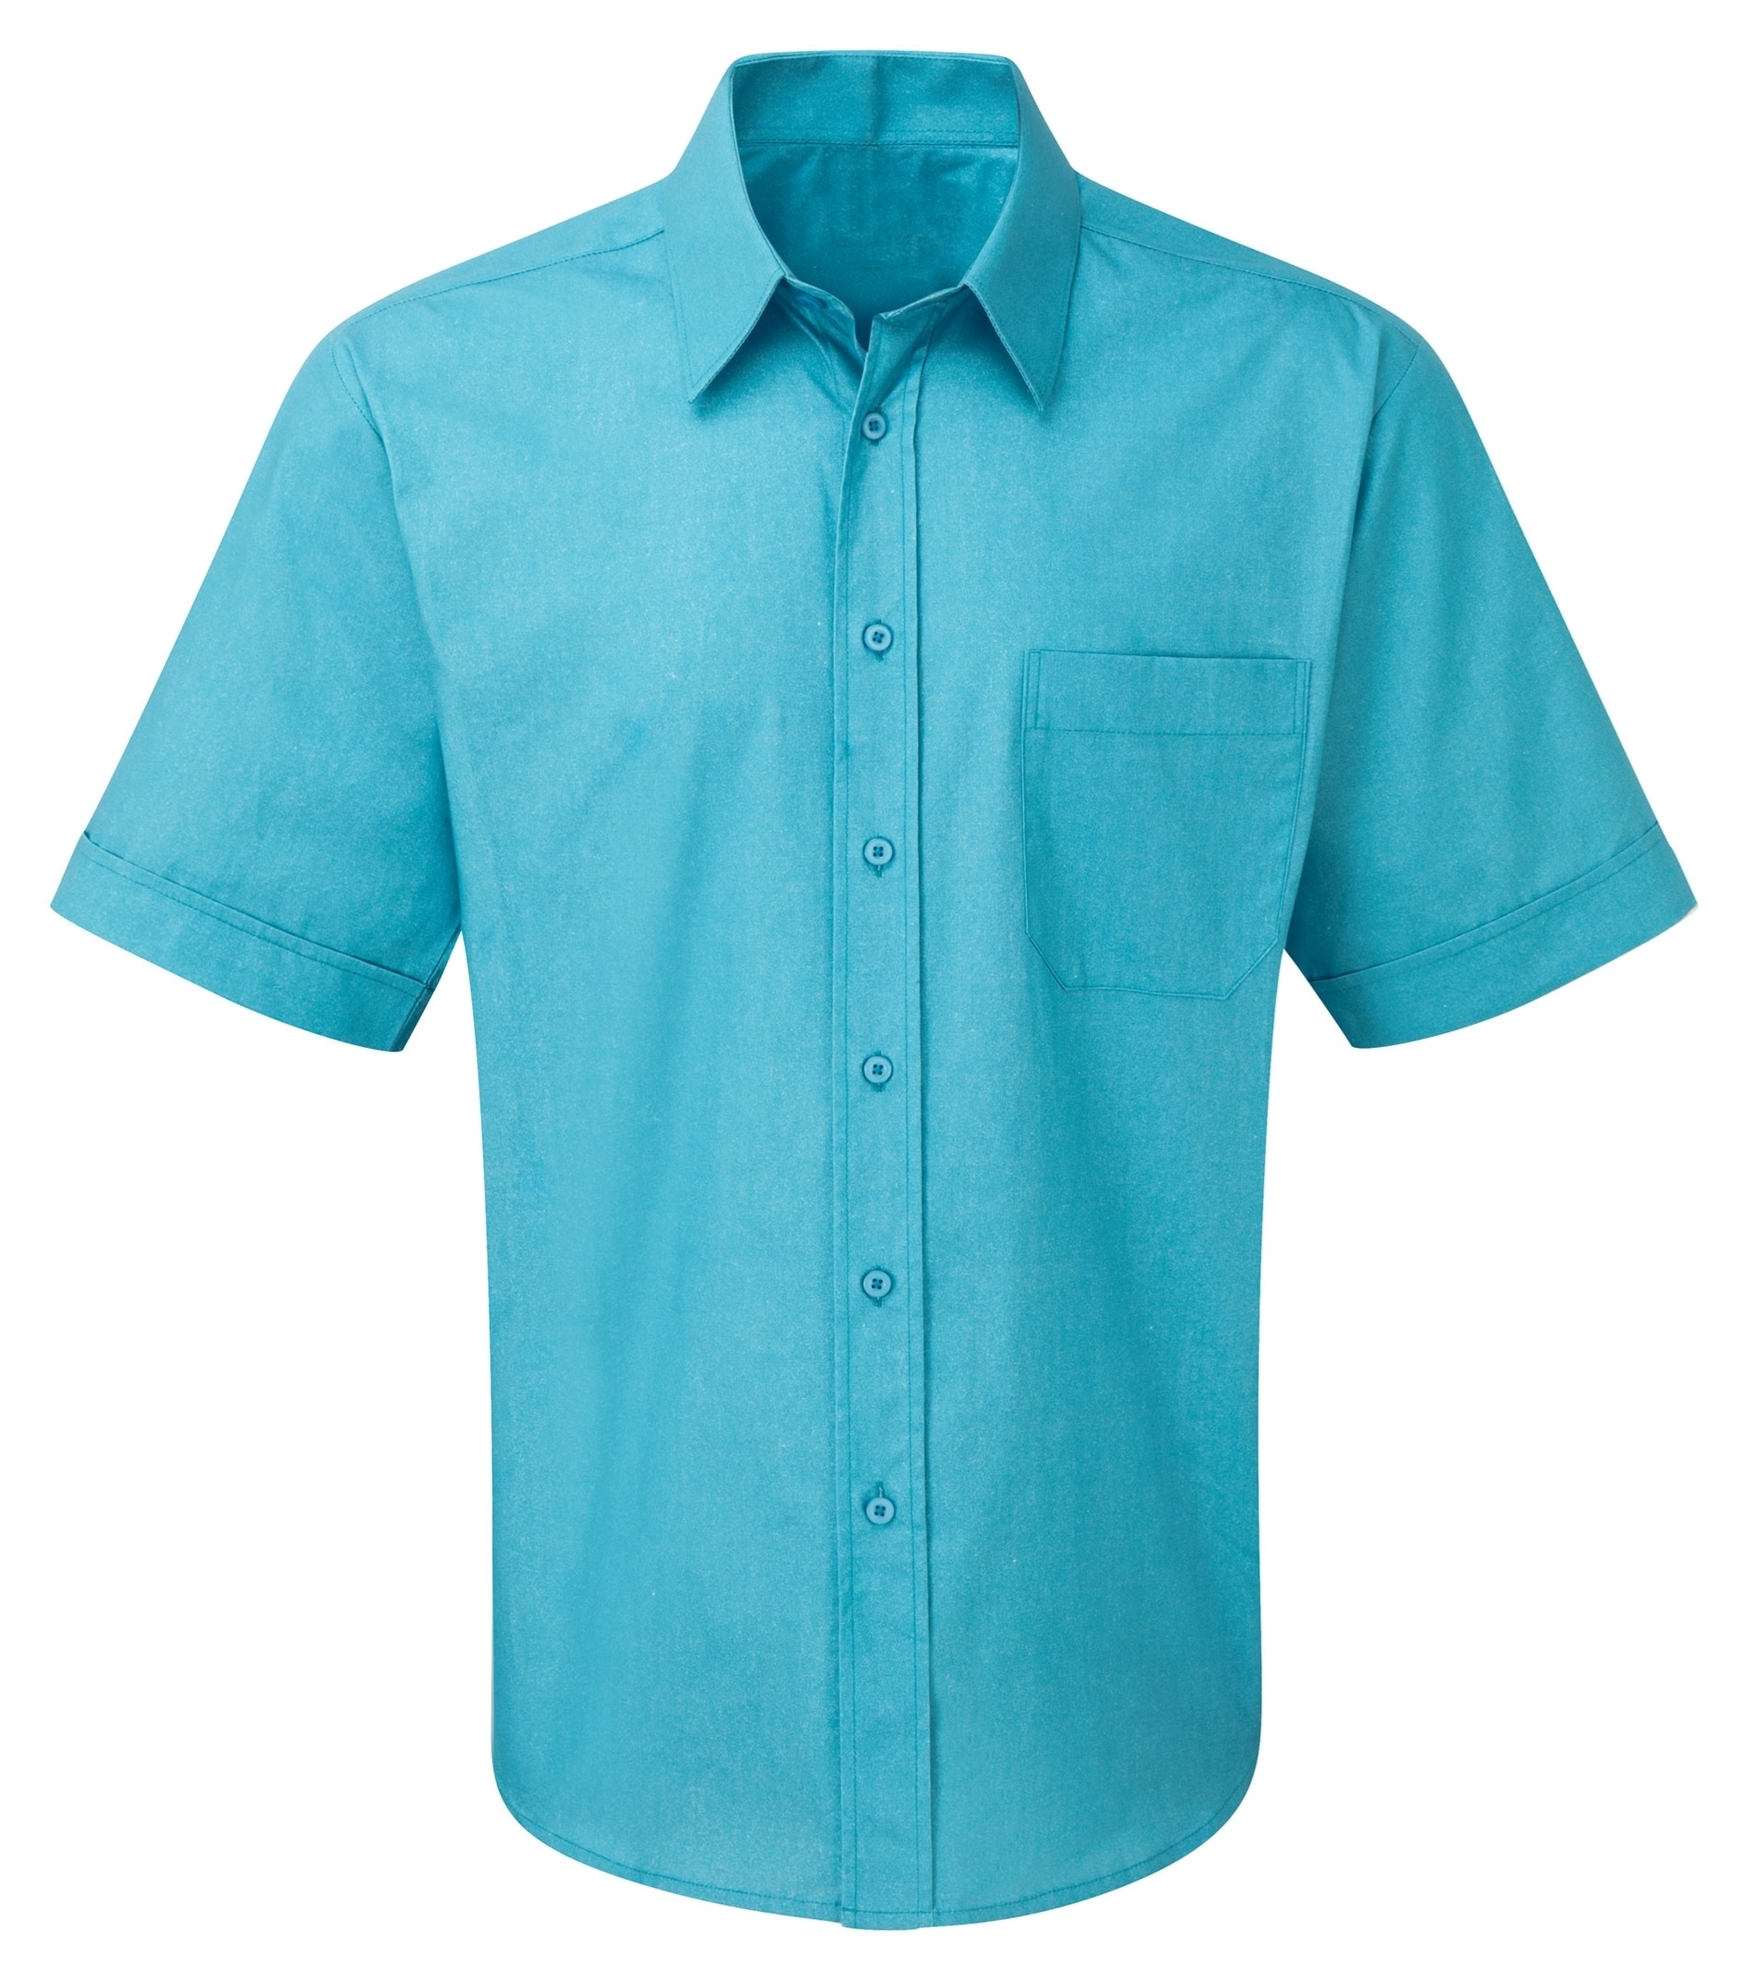 Picture of Male Short Sleeve Shirt - Plain Teal